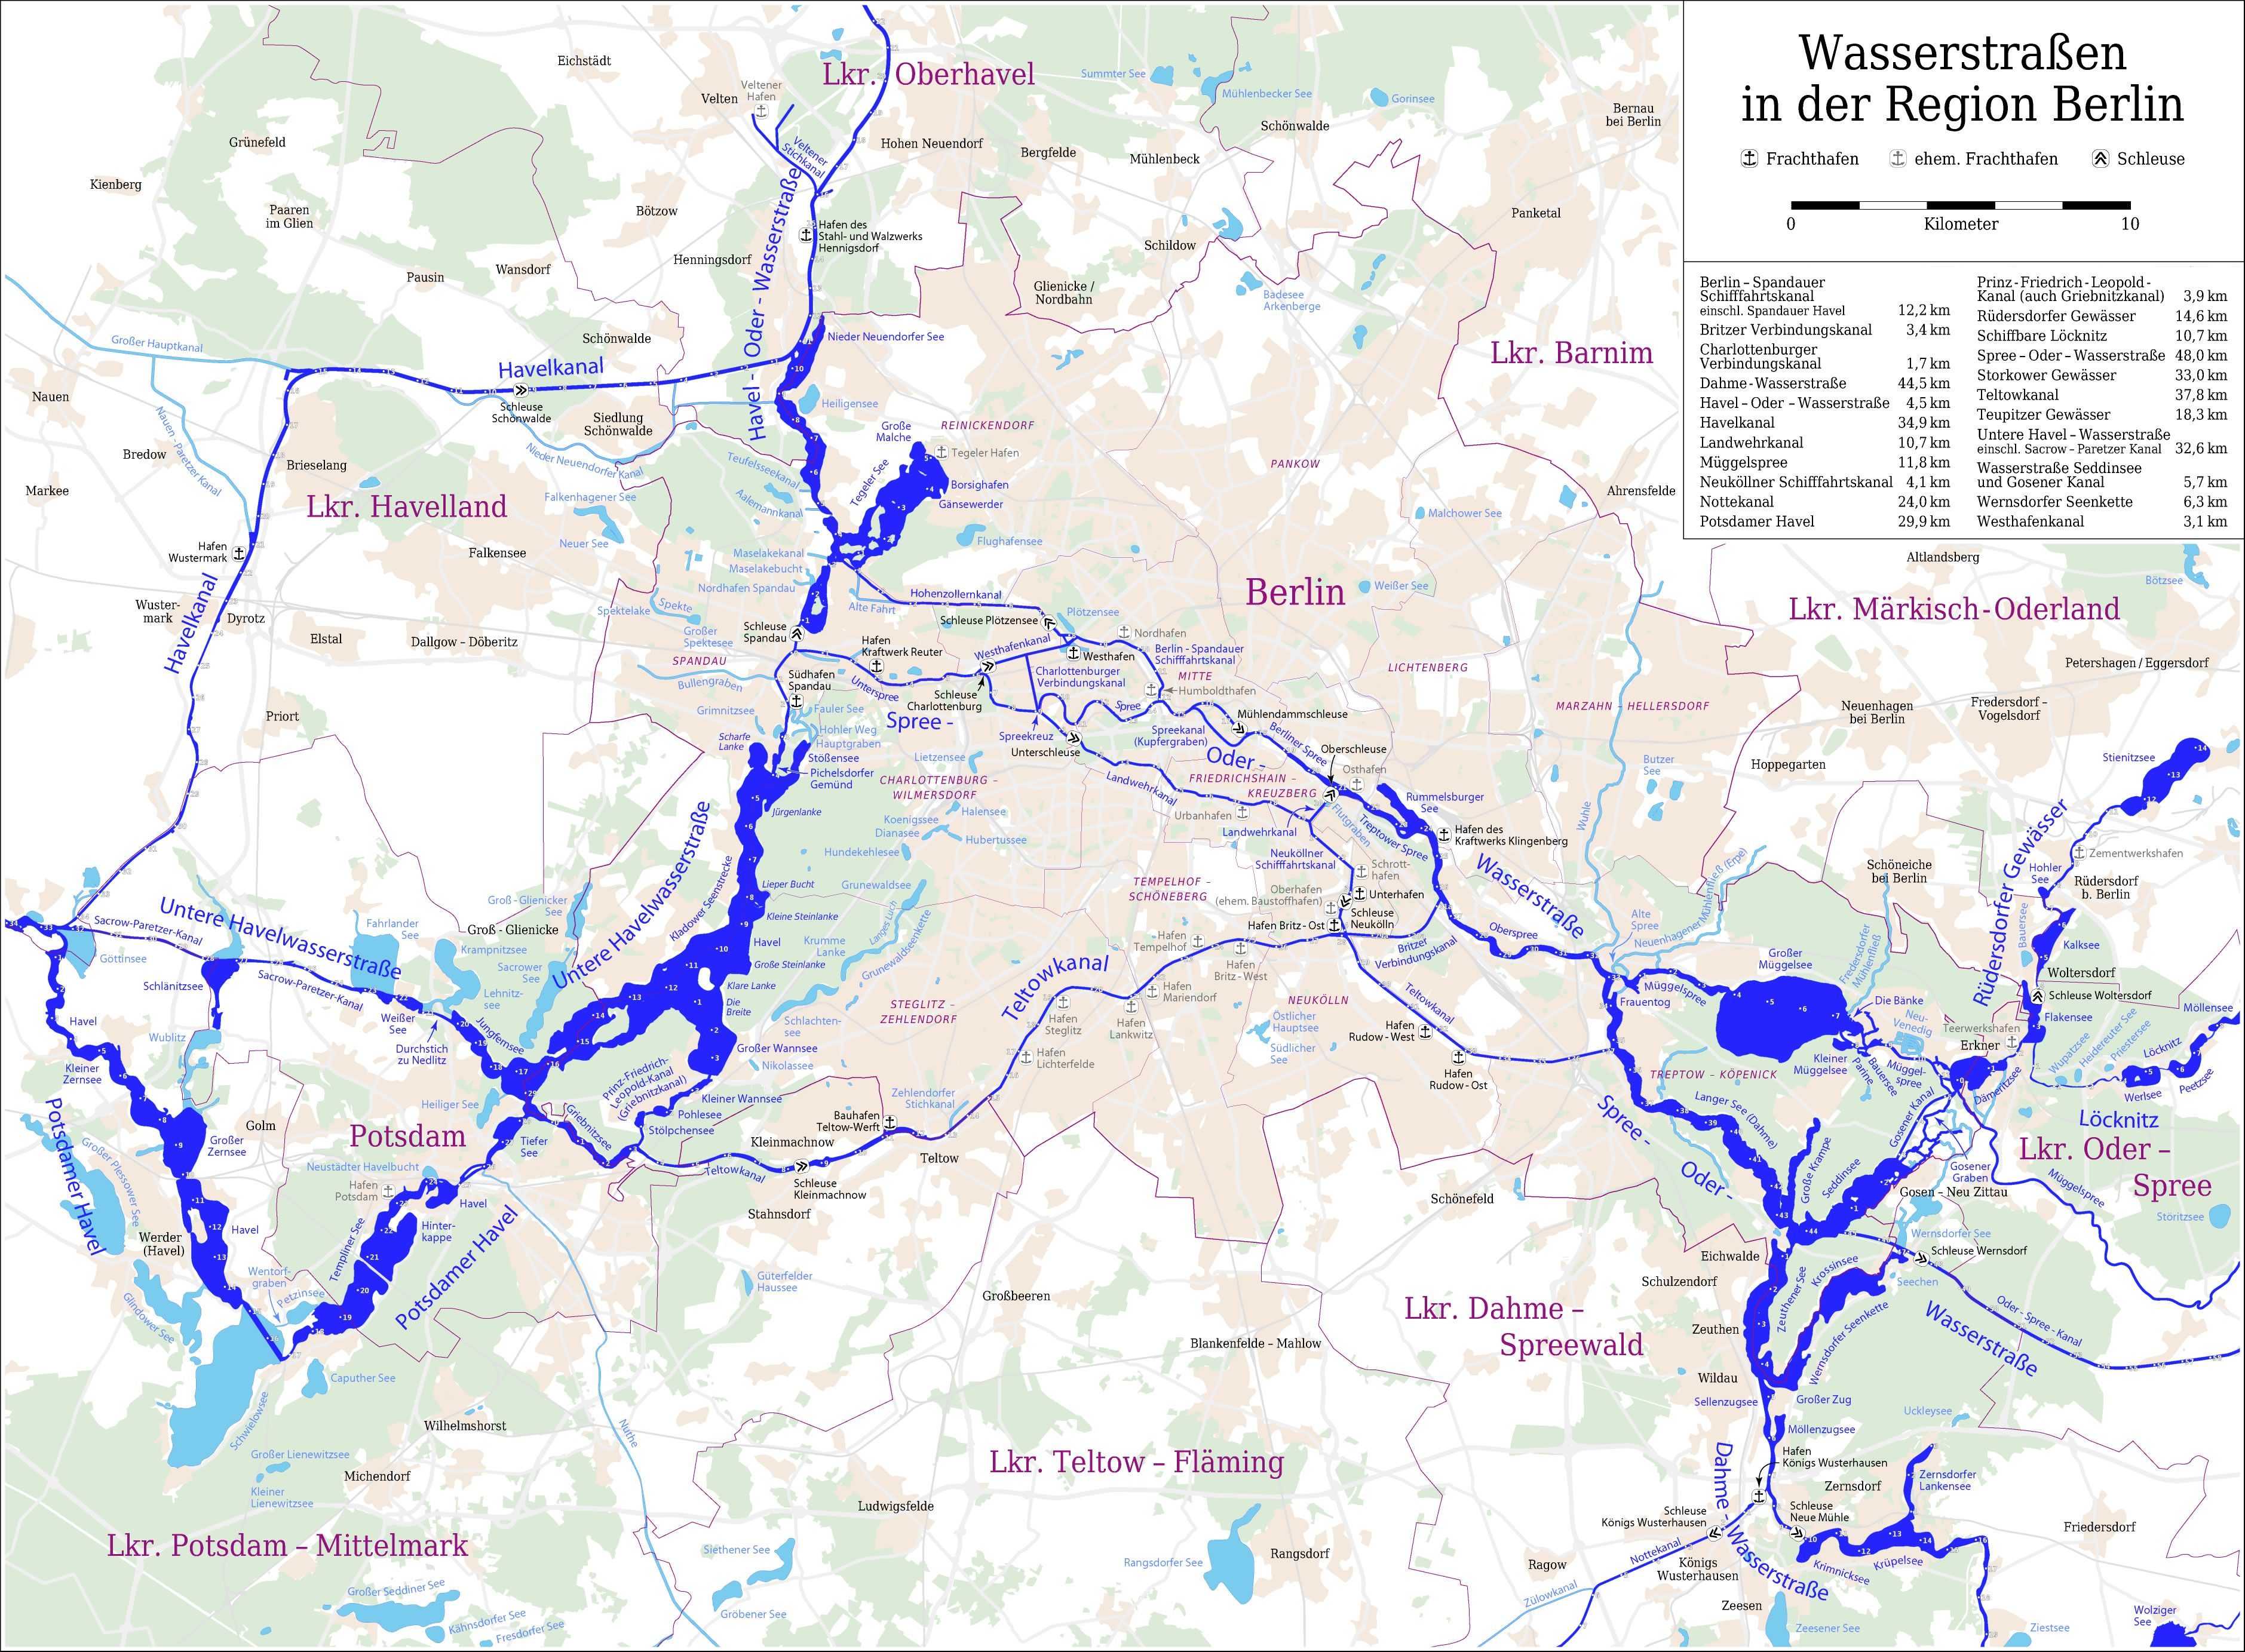 Map of canals and waterways in Berlin